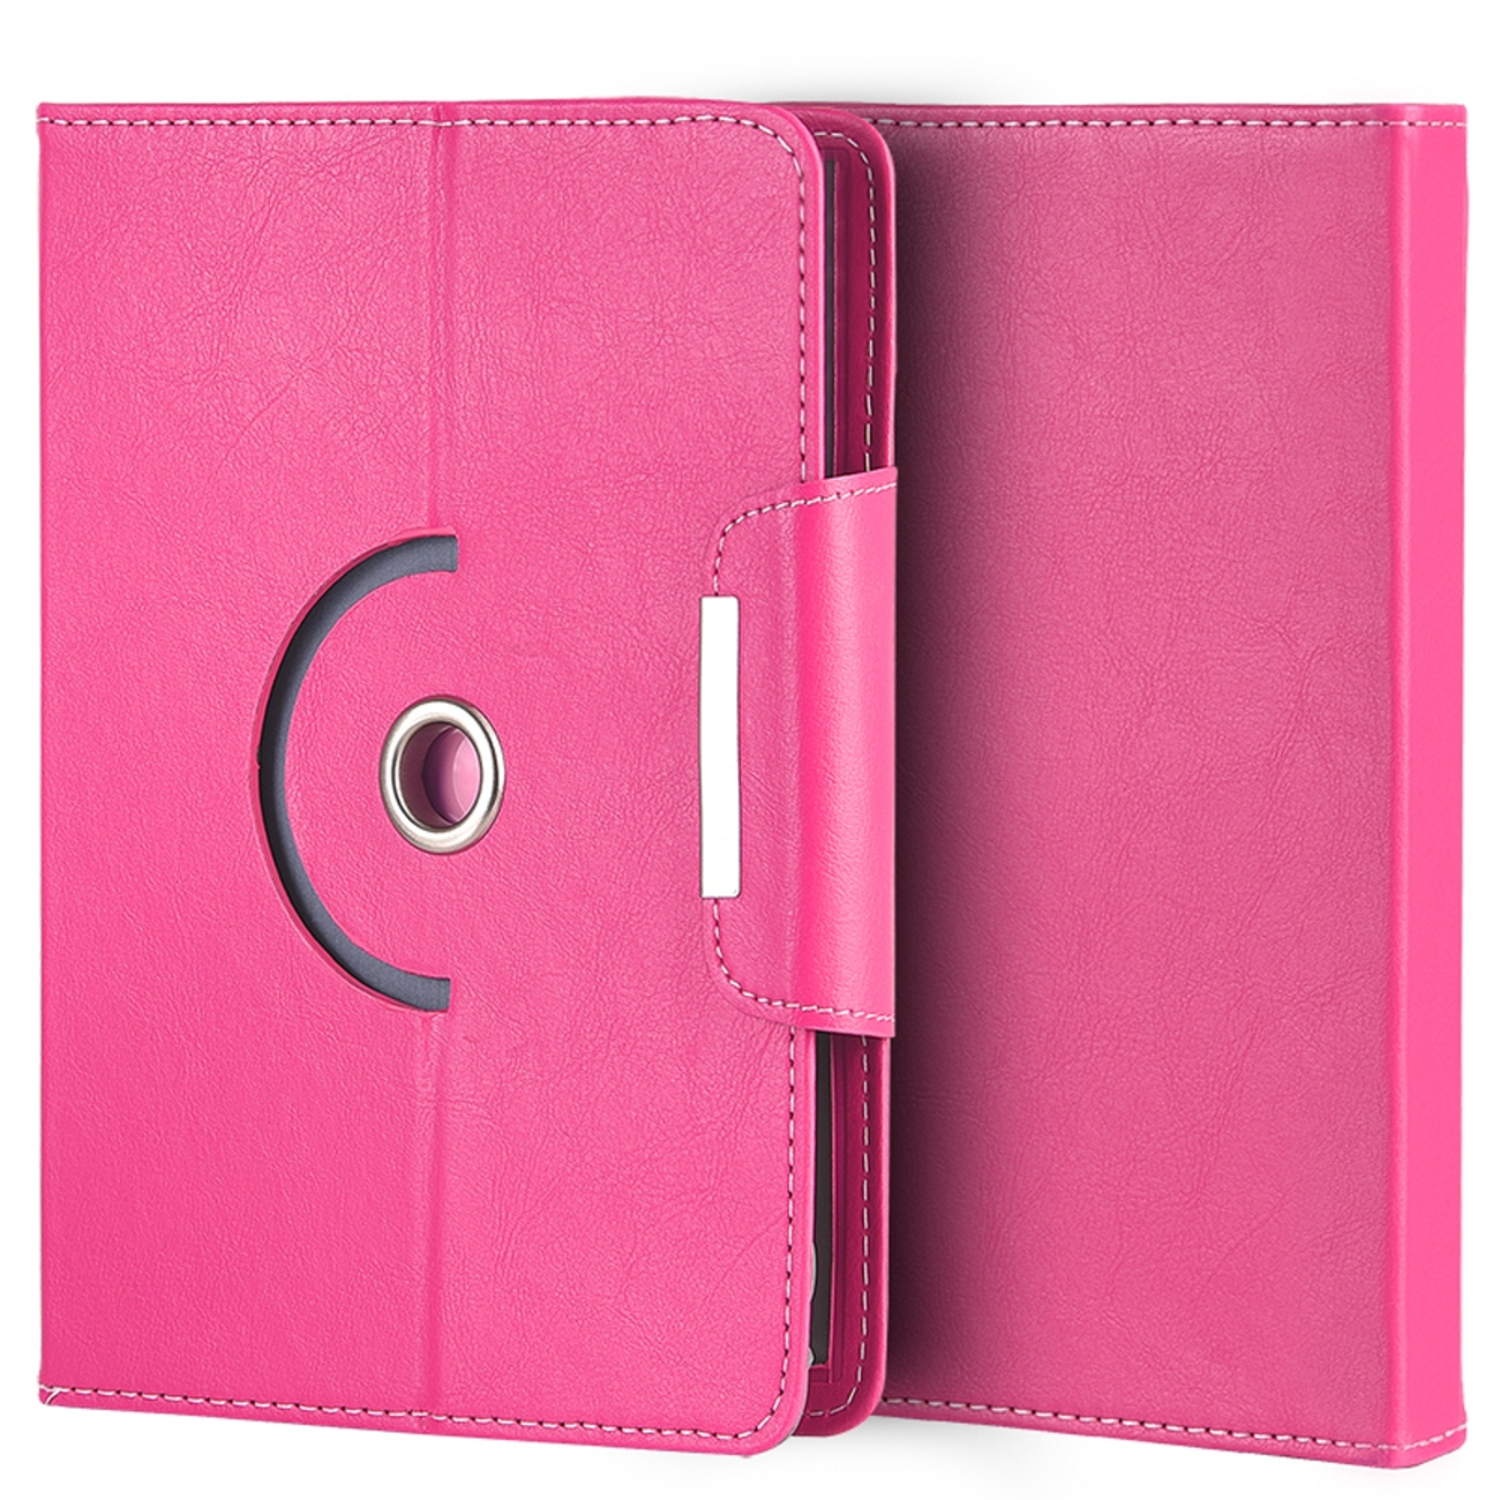 "Tablet Case for 8"" Tablets, by Insten Universal Rotating Multi Angle Standing Case Folio Cover with Card Slots for 8 Inch Tablet - Hot Pink"